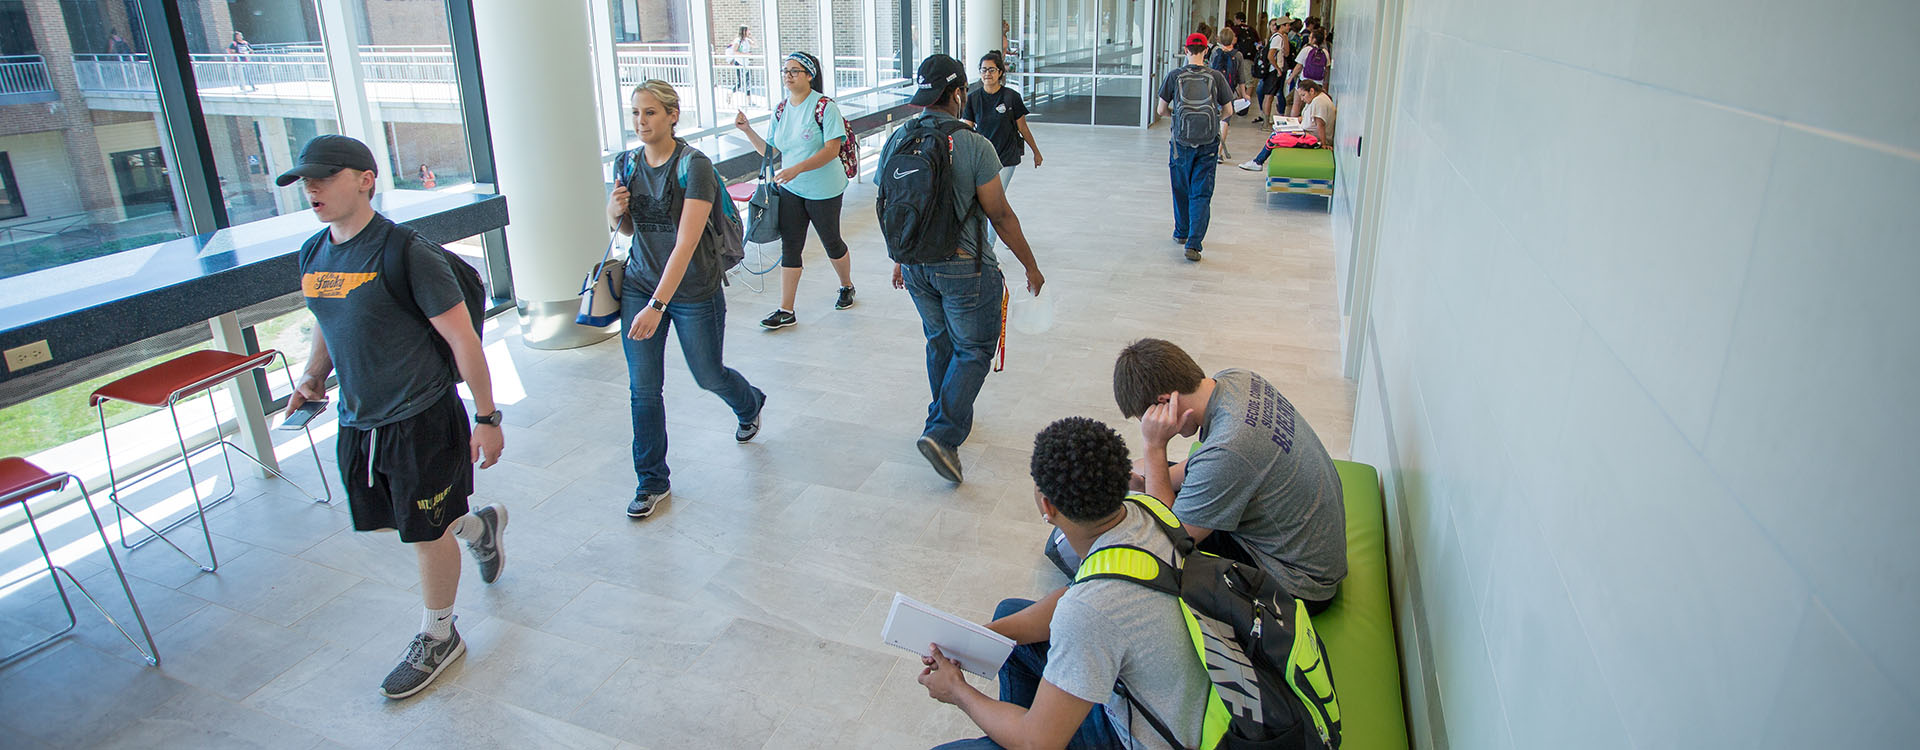 students walking in SRB building